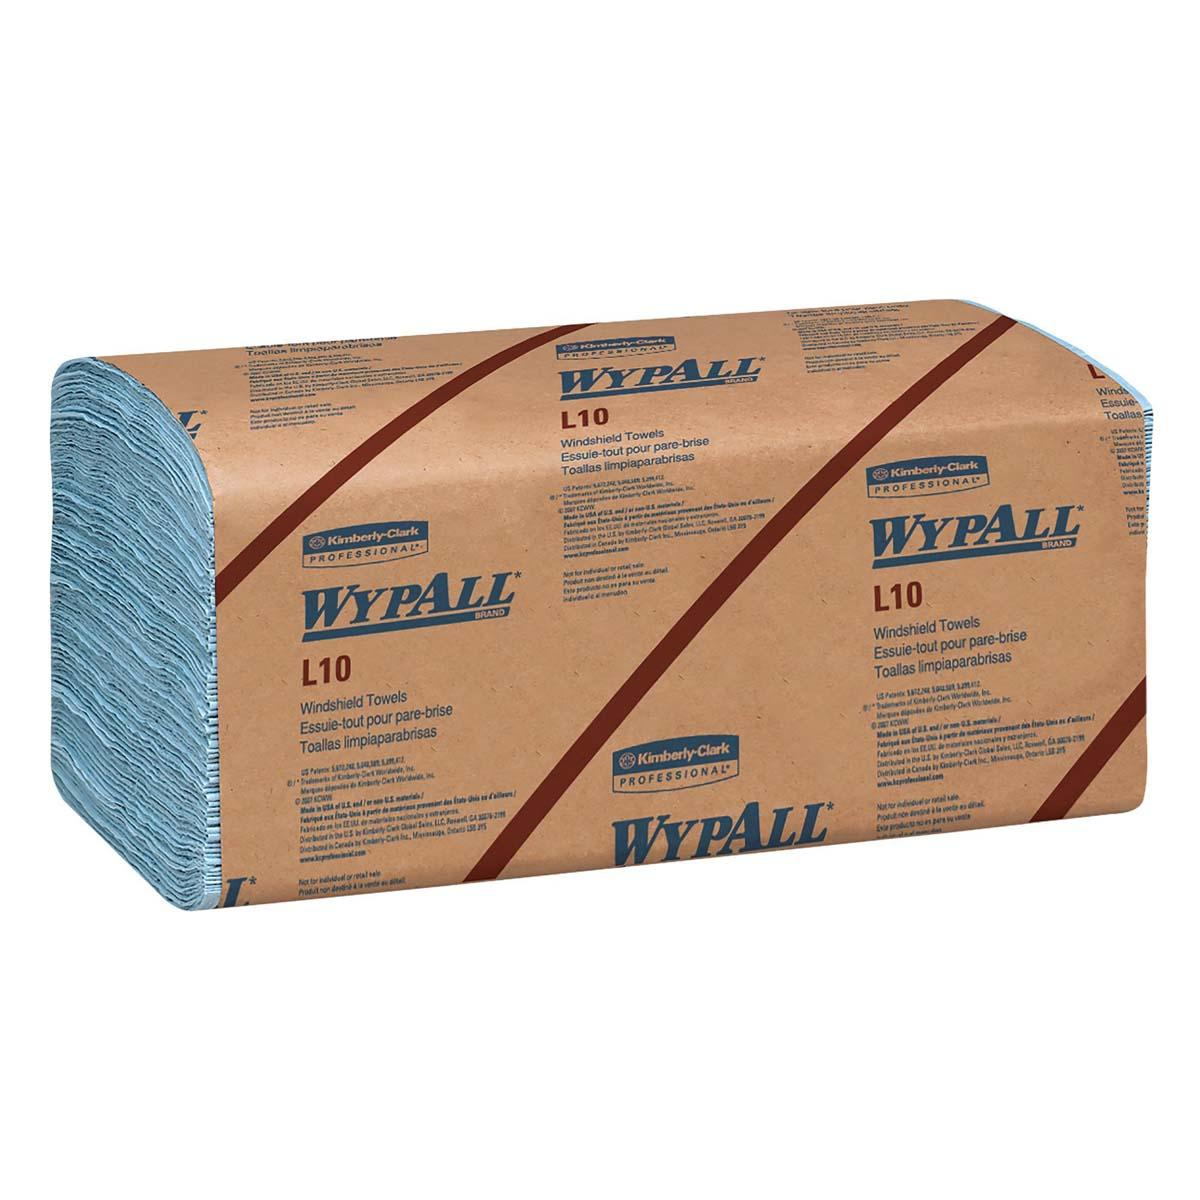 Wypall L10 Disposable Wipers (05120), Windshield Wipe, 2-PLY, Banded, Blue, 16 Packs / Case, 140 Wipes / Pack, 2,400 Sheets / Case